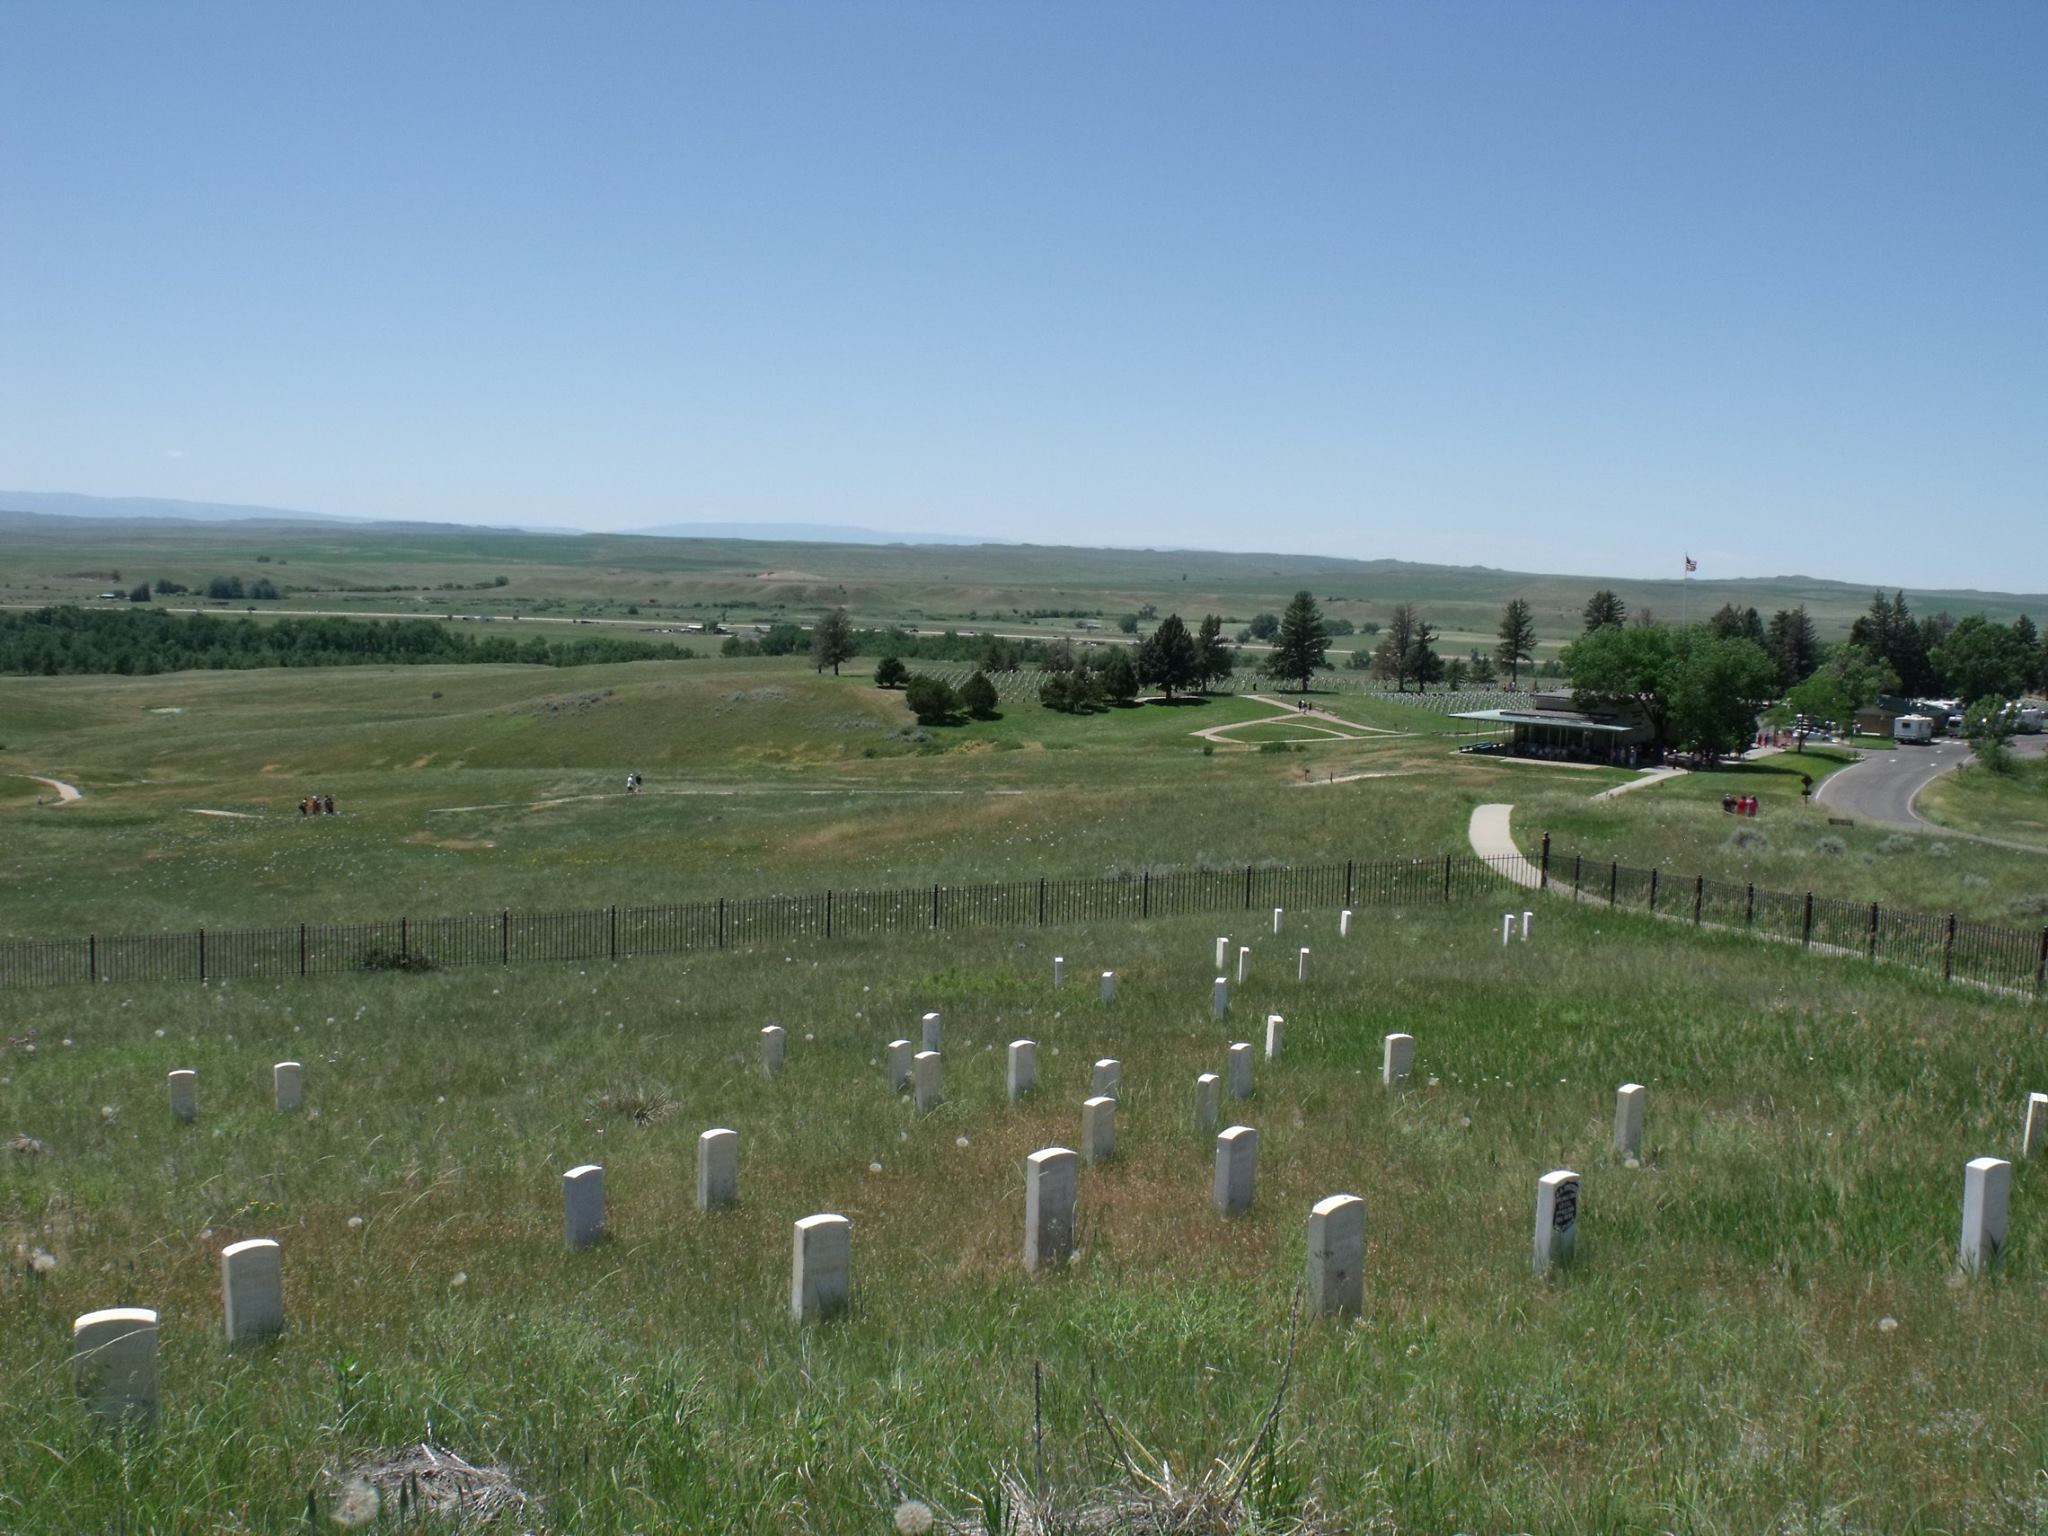 U.S. soldier grave markers pepper Little Bighorn National Monument.